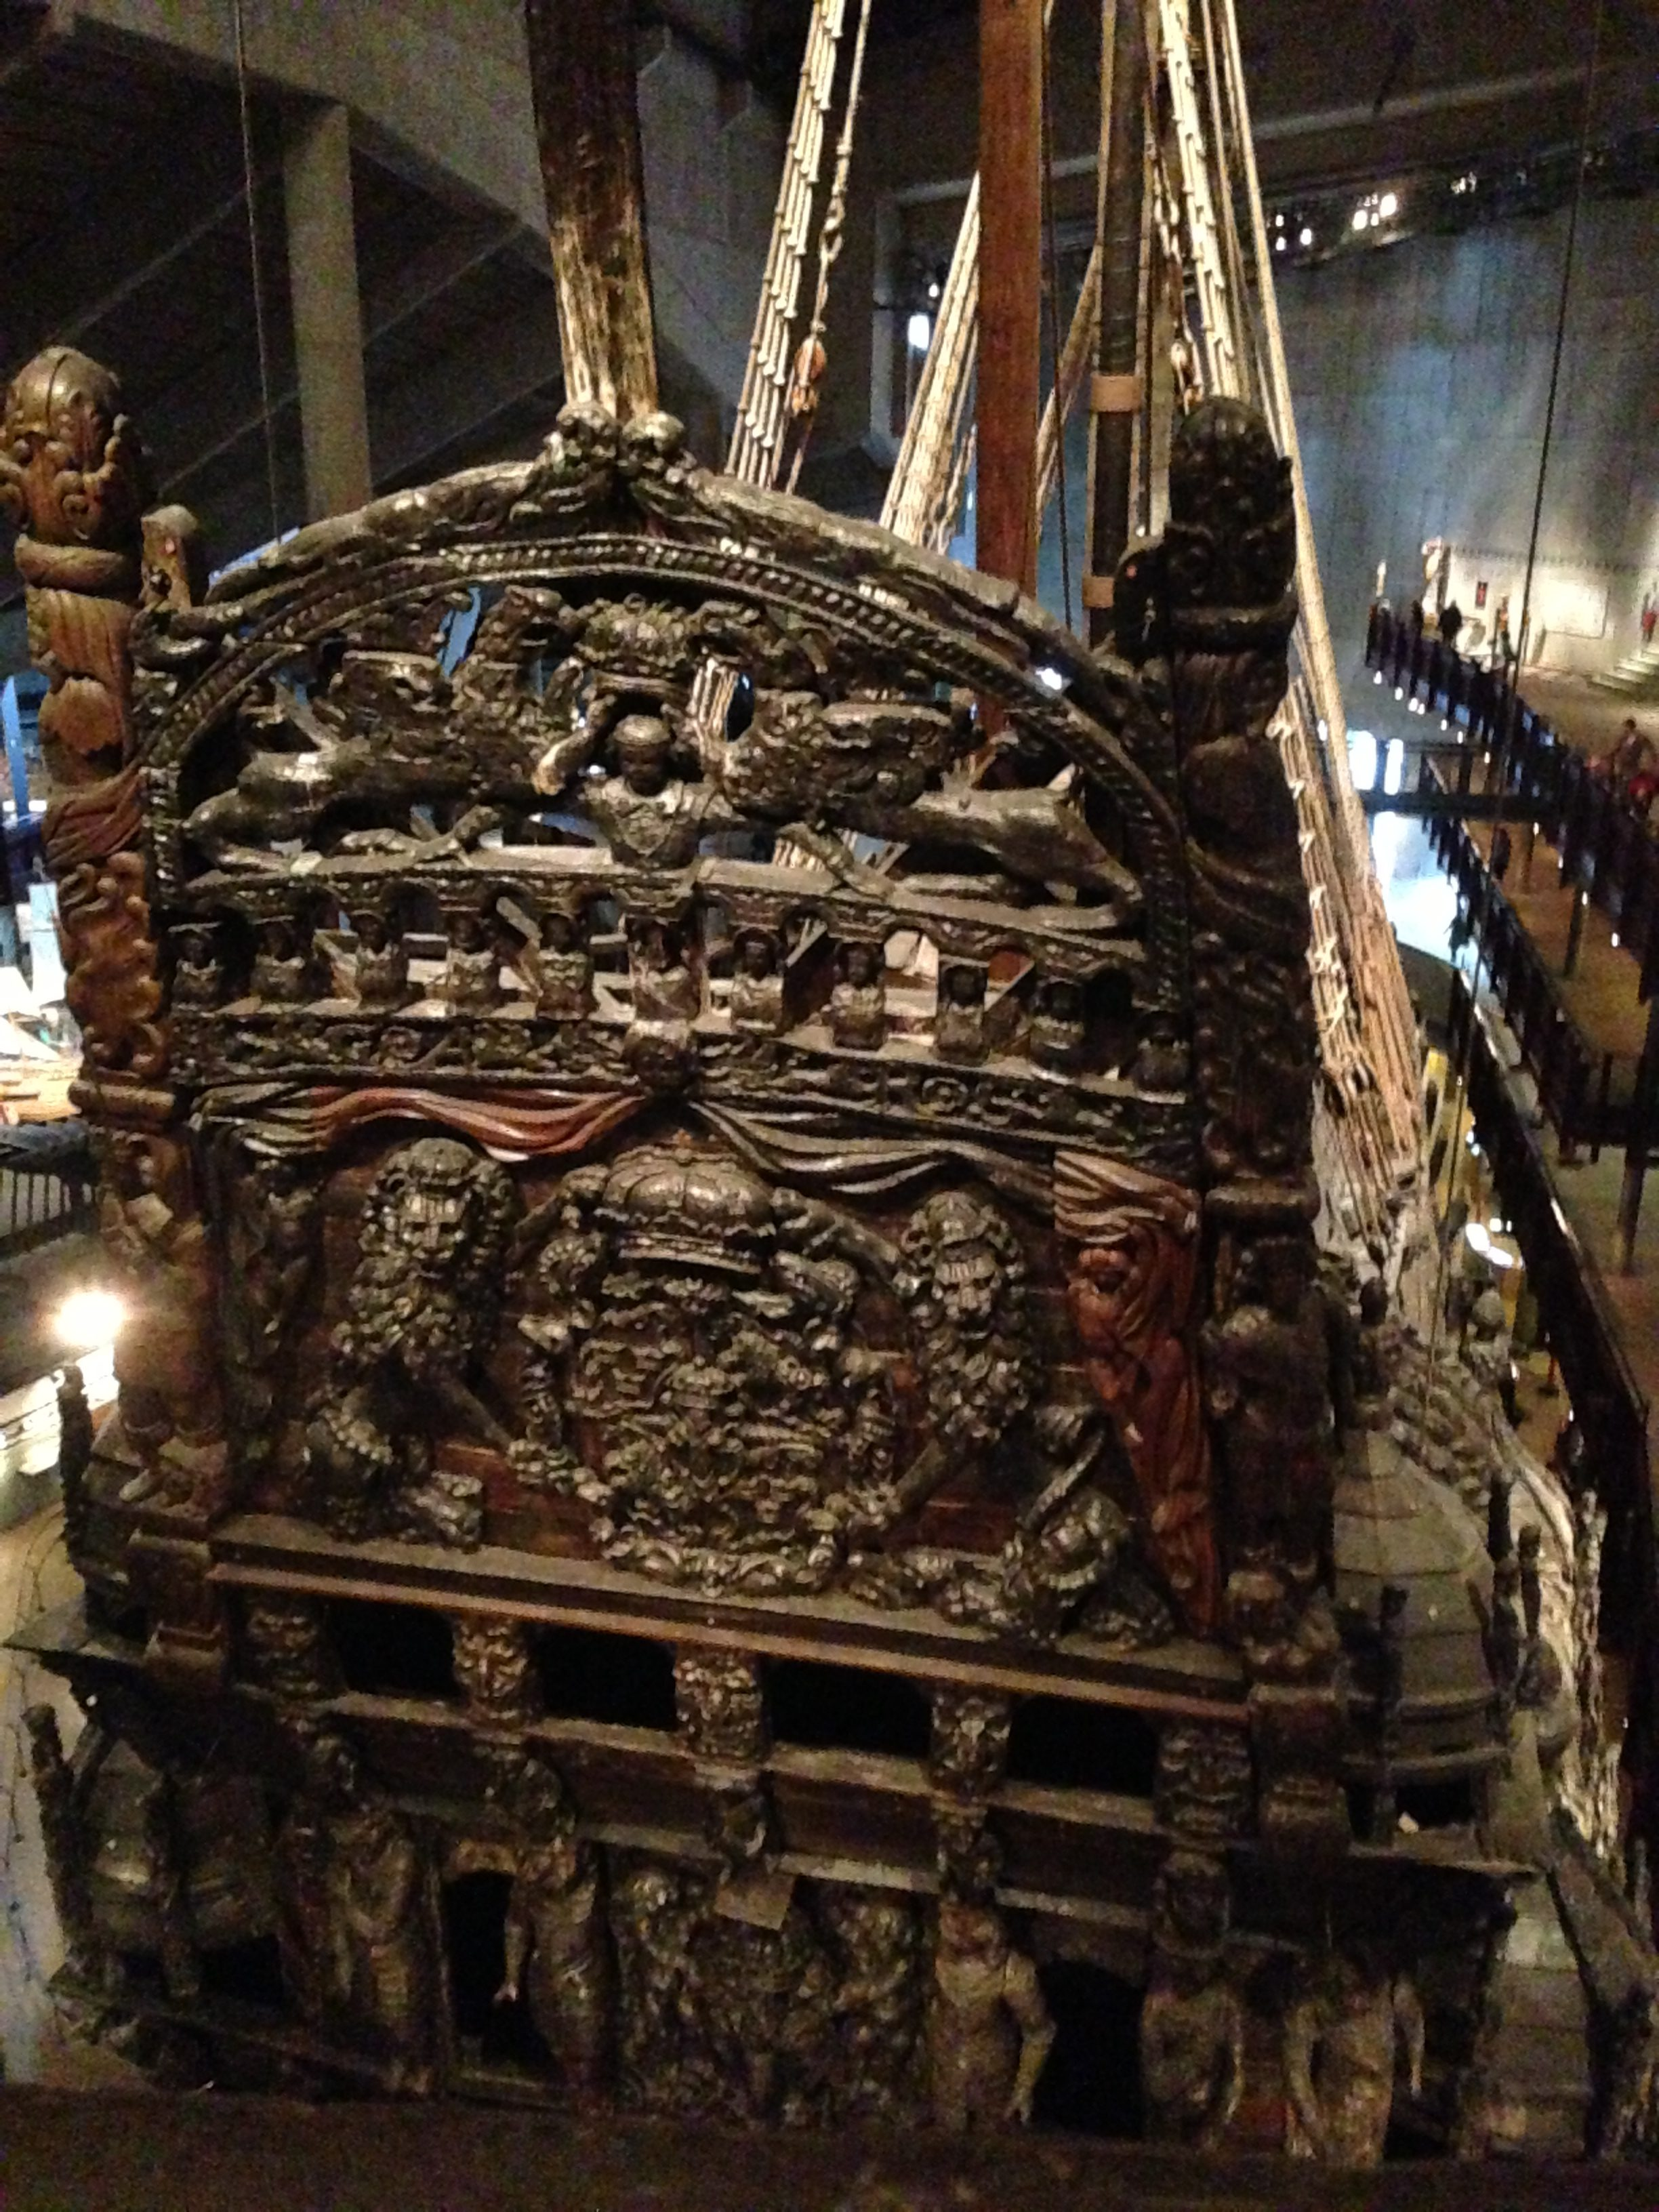 The original coat of arms on the Vasa warship in Stockholm